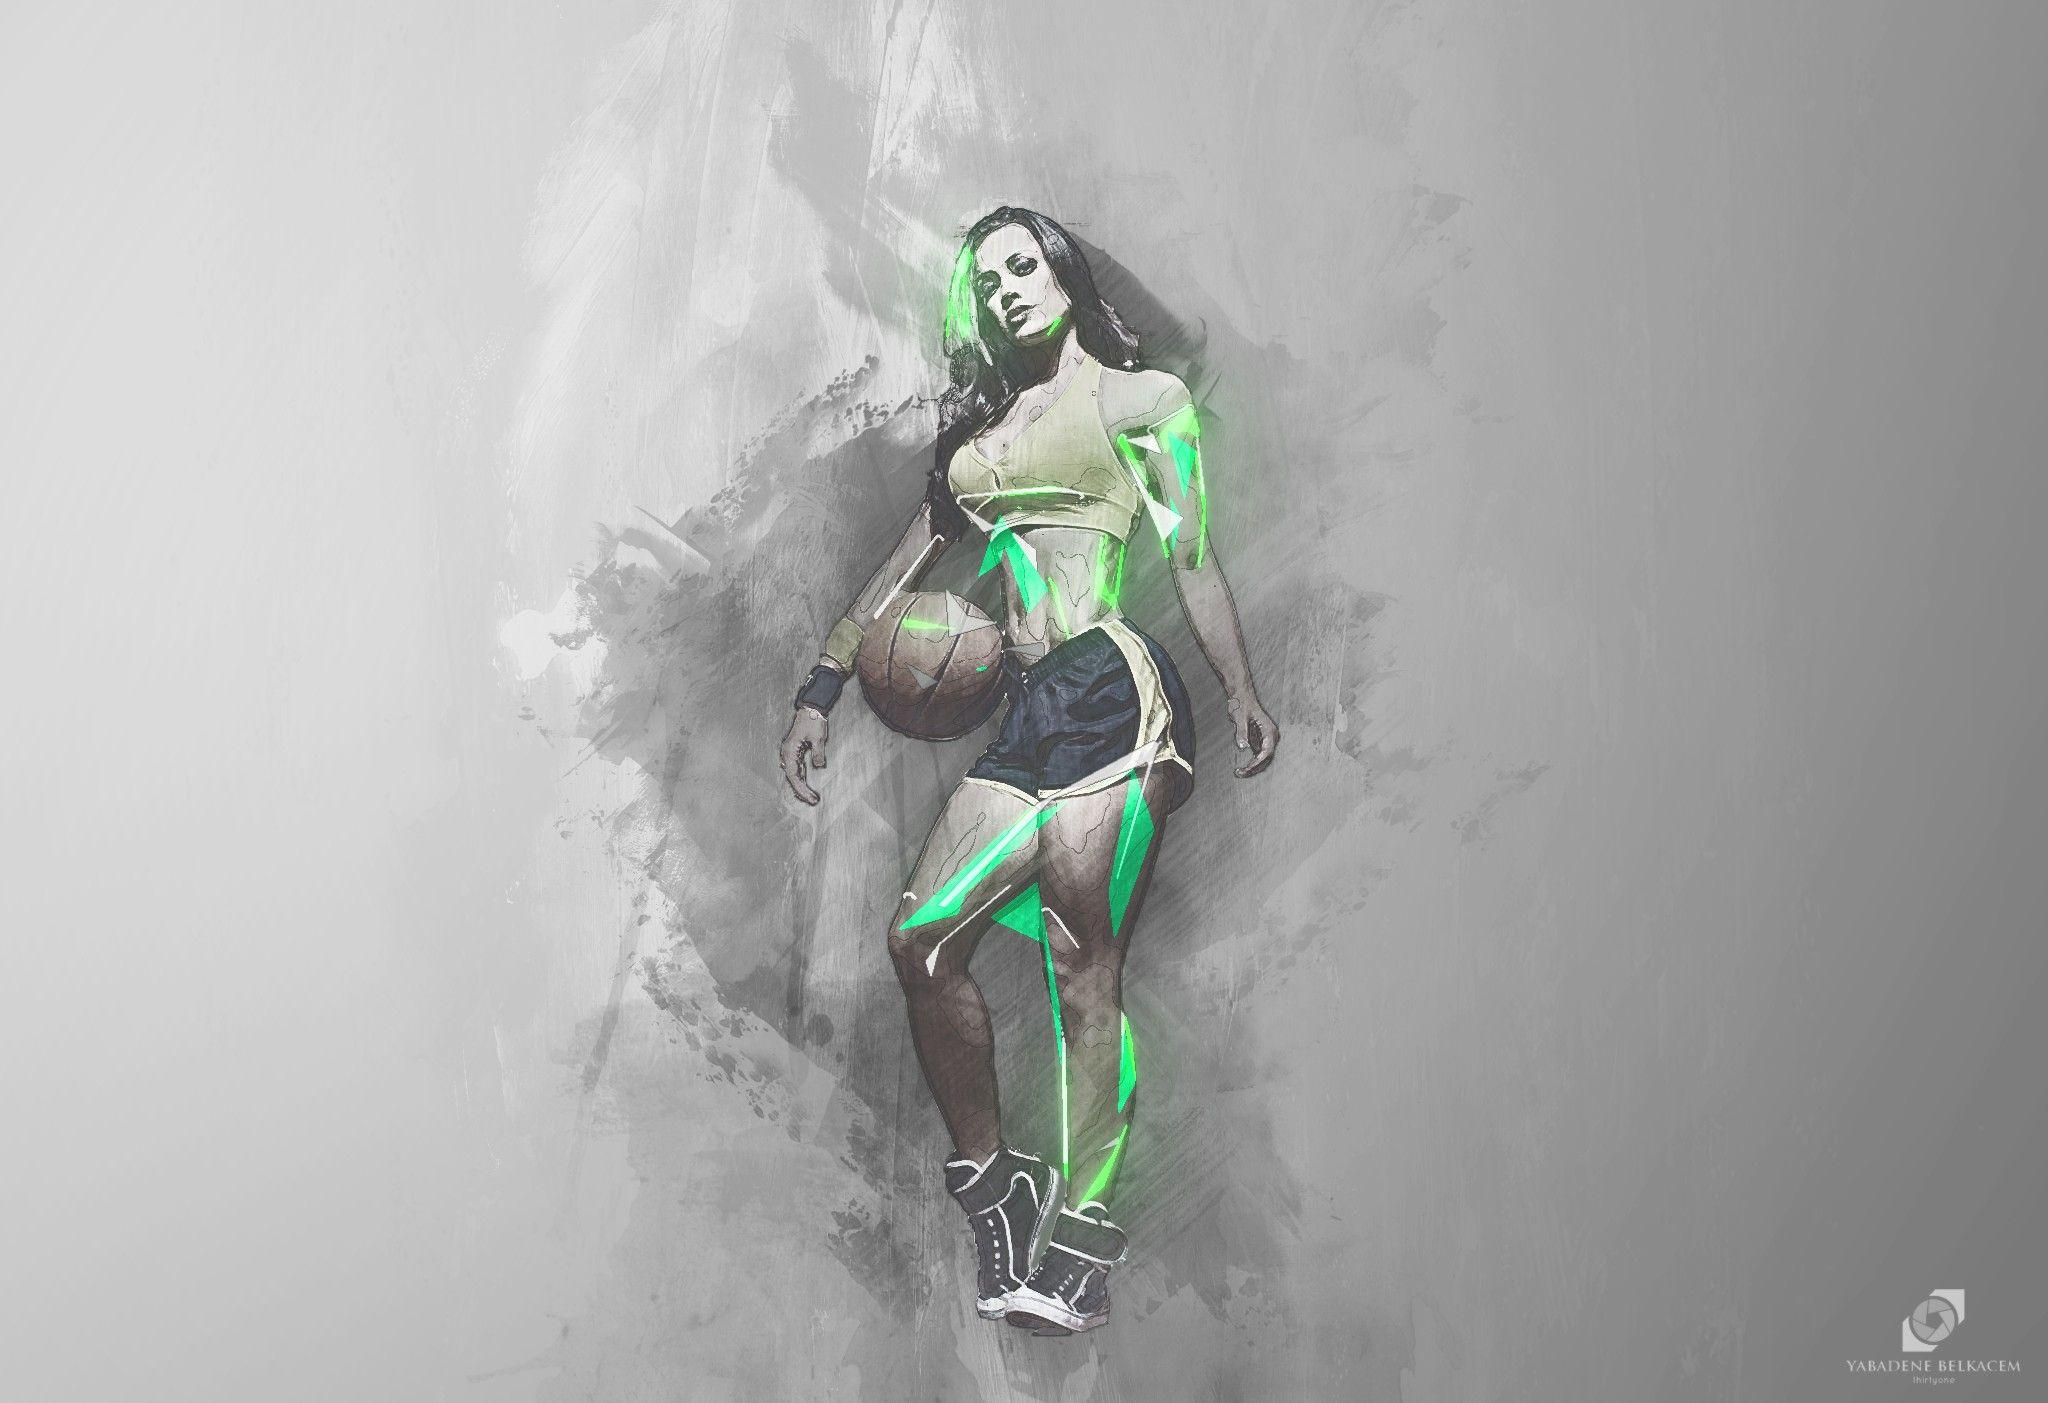 Wallpapers : drawing, illustration, women, sport, abstract, artwork